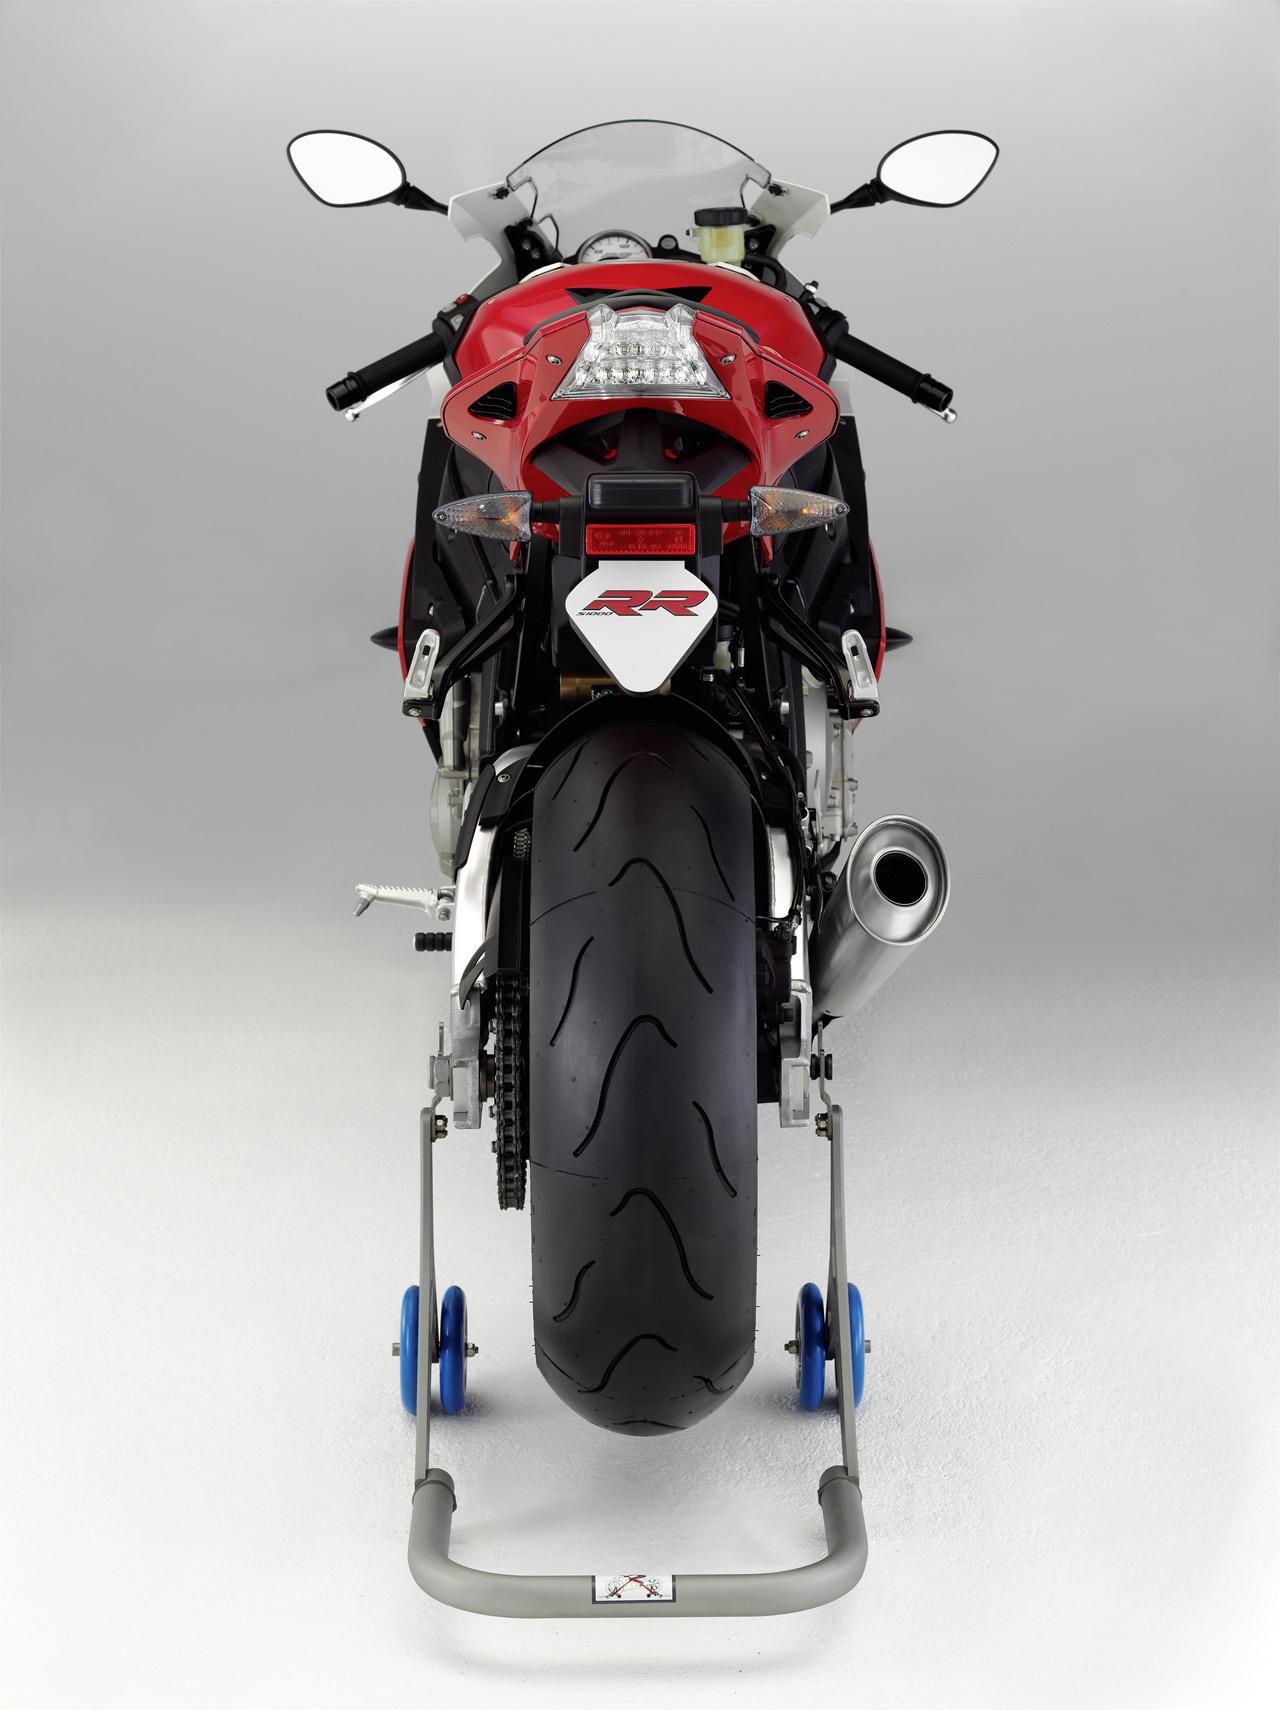 2012 bmw s 1000 rr 10 2012 BMW S 1000 RR   Implementing Changes…